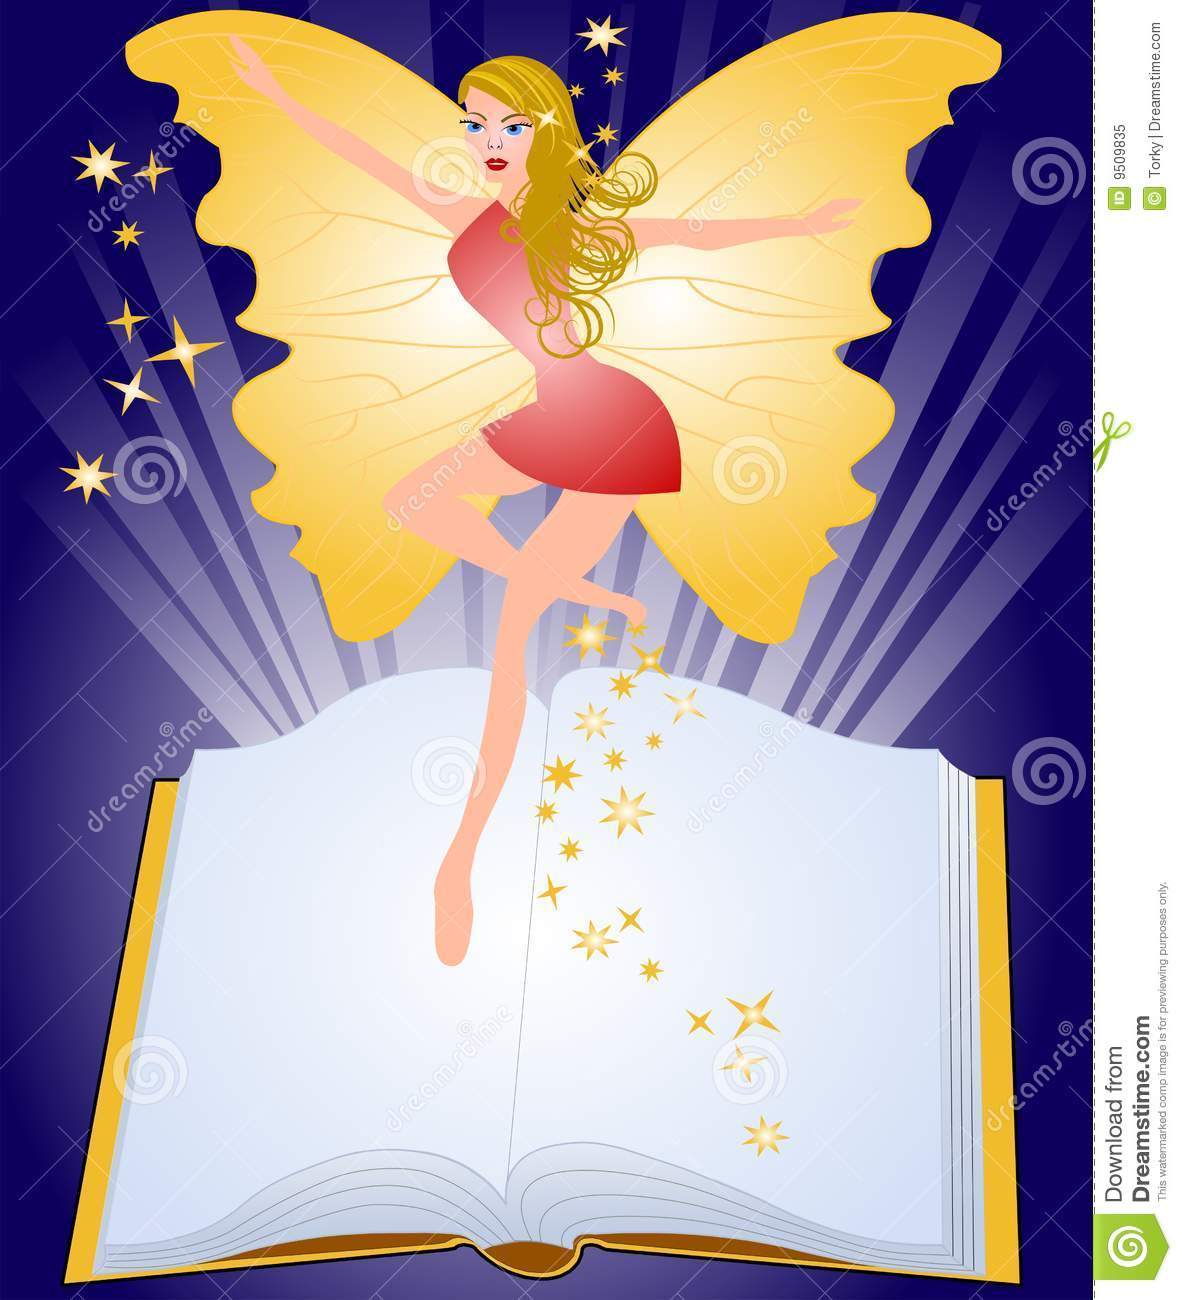 fairy tale book cover template - blank fairy tale book cover royalty free stock photography